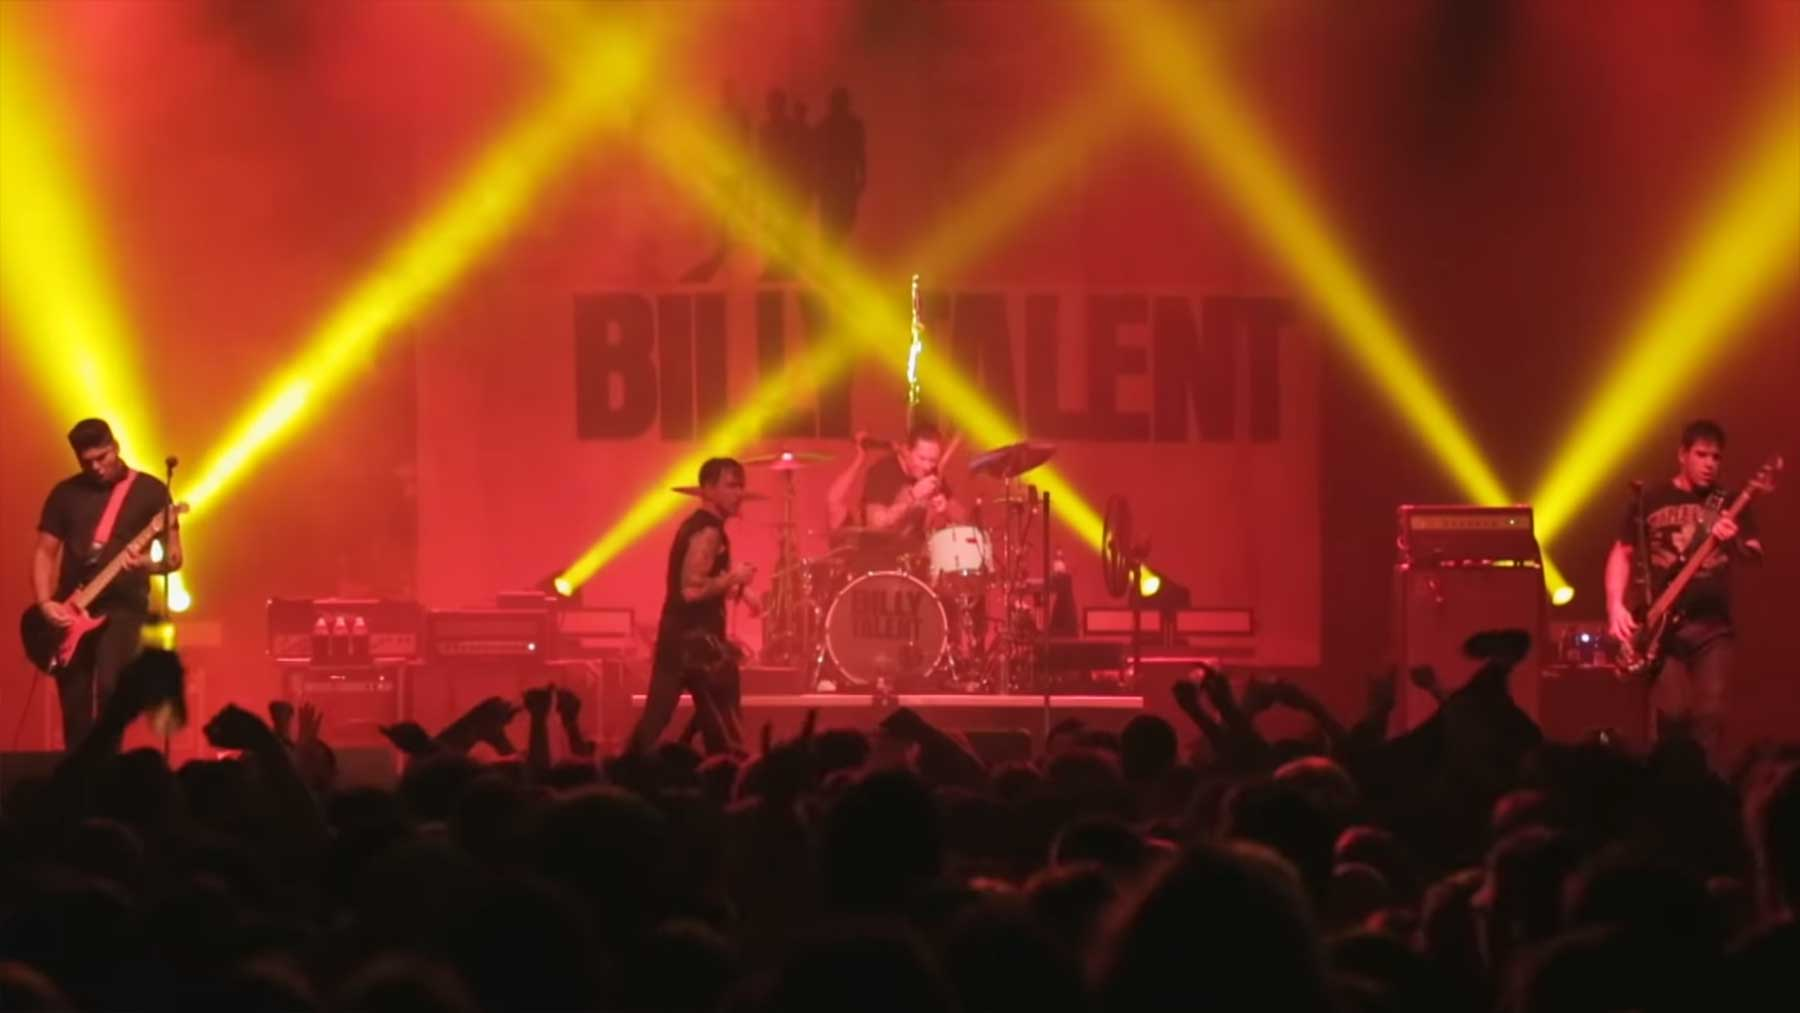 Billy Talent: 60 Minuten Live-Konzert voller Hits